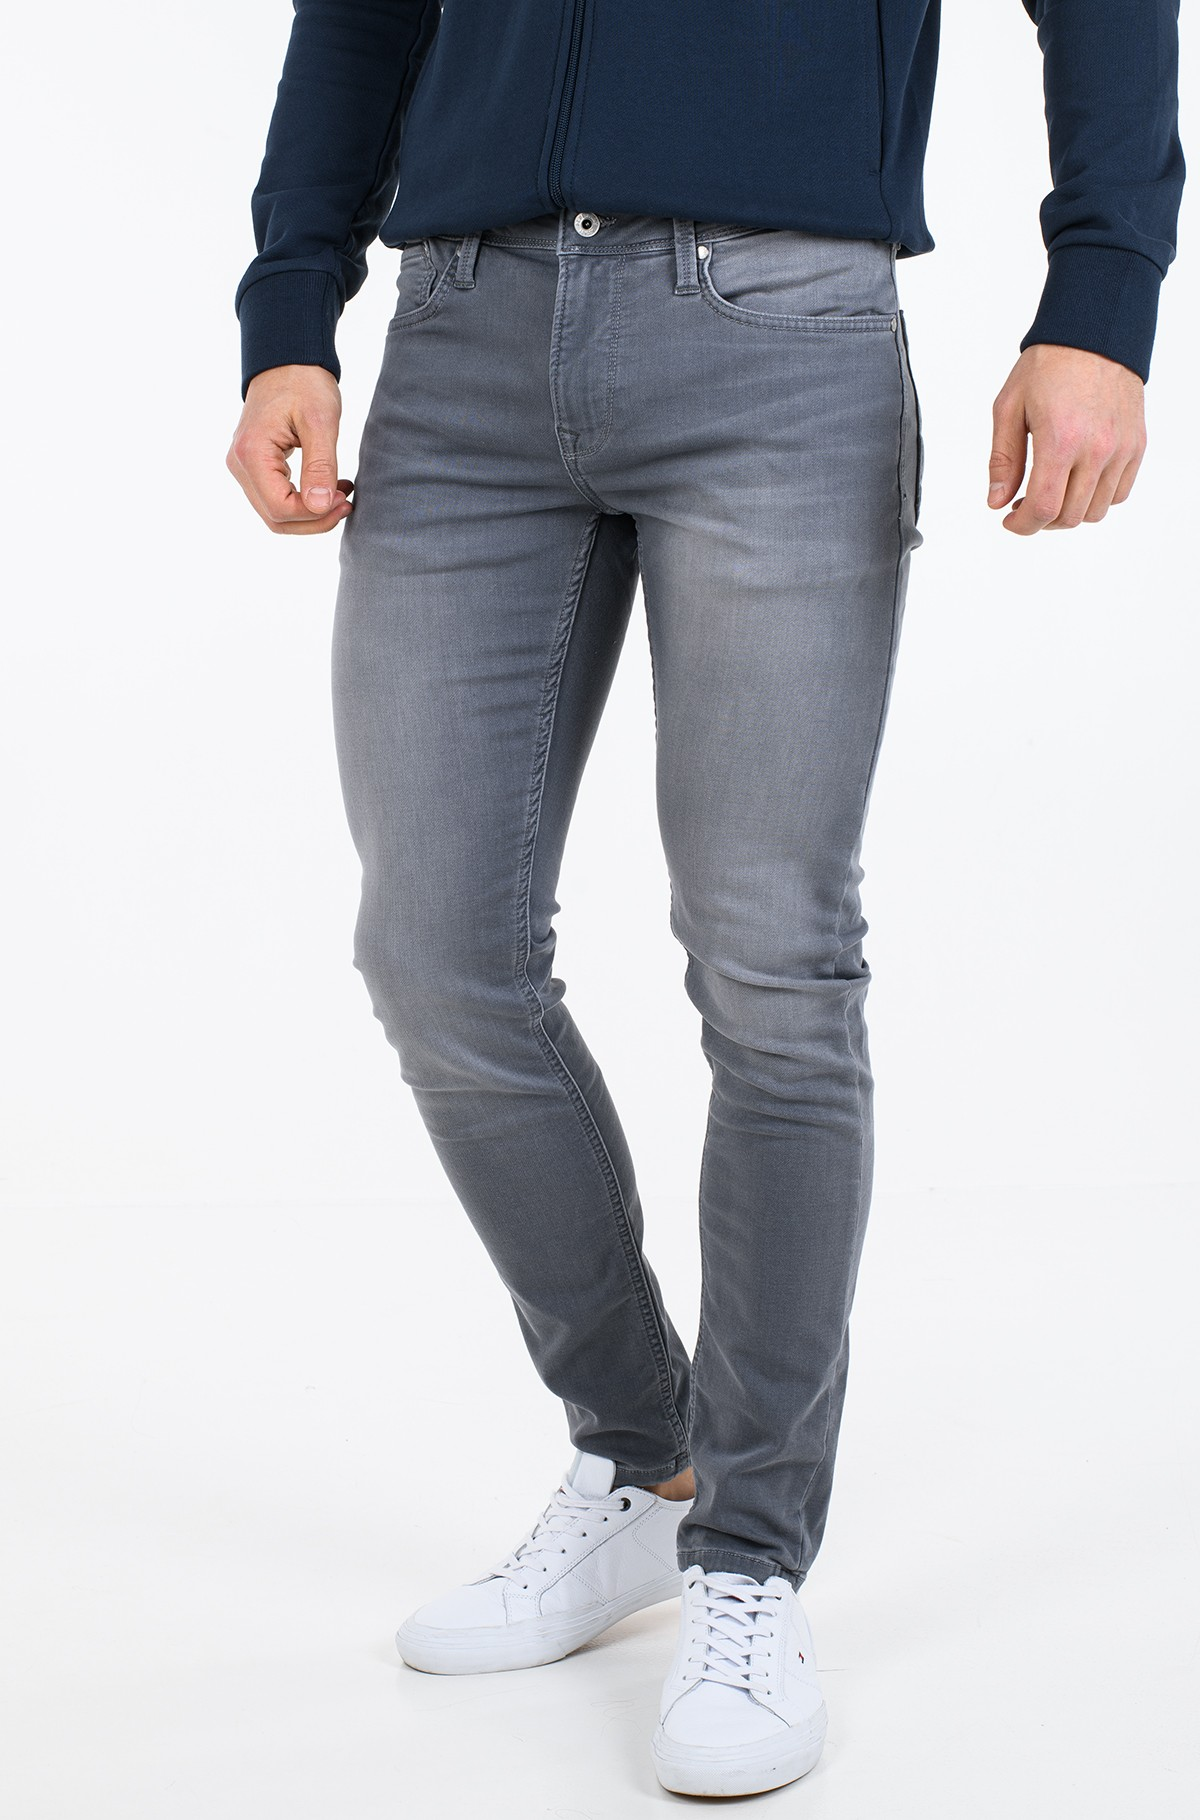 Jeans FINSBURY/PM200338UD4-full-1